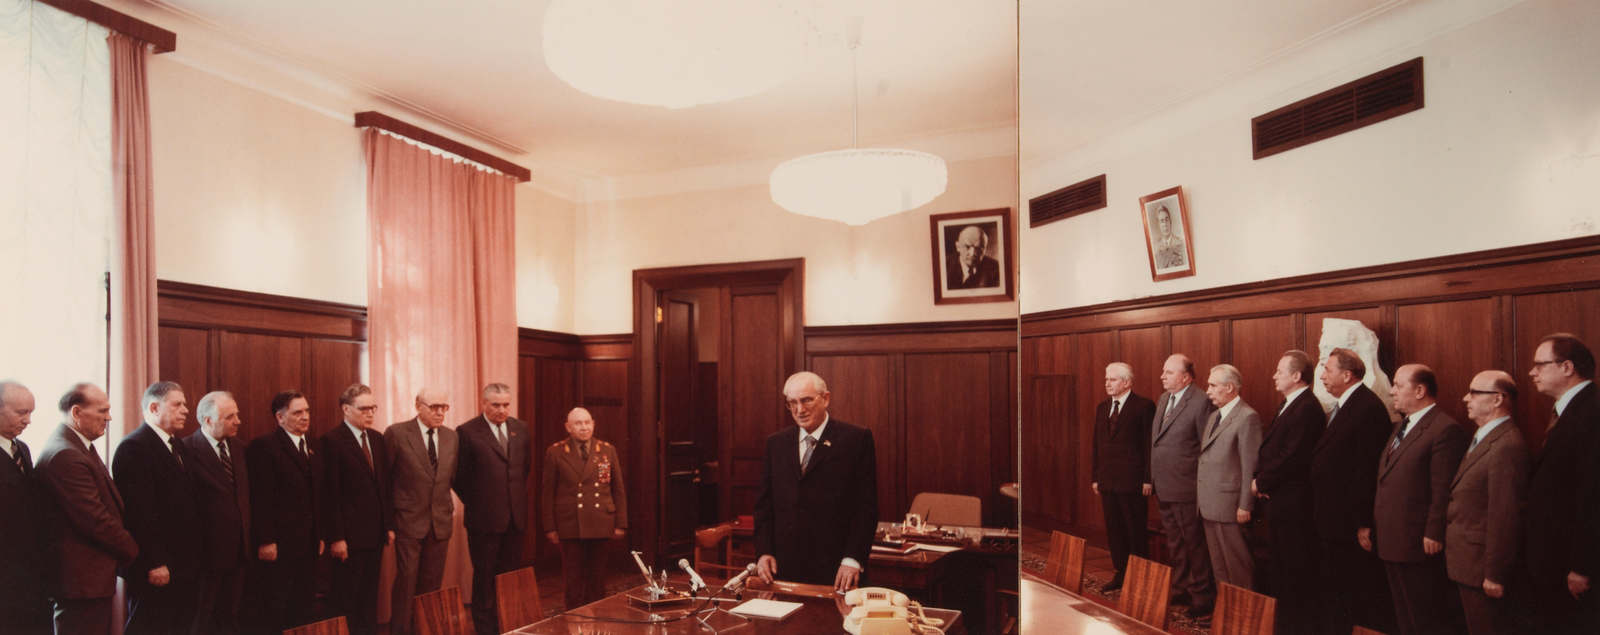 "Extremely rare unpublished photograph of the ""collegium"" of the KGB (USSR) dating from 1982, with KGB President Yuri ANDROPOV (1967-1982) in his office, in the presence of the first vice-president of the KGB, the vice-presidents of the KGB, the heads of the various KGB directorates, as well as the two presidents of KGB state agencies. This photo is exceptional because it shows 4 KGB presidents (1st on the left: Vladimir KRYUCHKOV (president from 1988 to 1991), 7th on the left: Viktor CHEBRIKOV (president from 1982 to 1988), 8th on the left: Vitaly FEDORCHUK (president in 1988), and 10th on the left: Yuri ANDROPOV (president from 1967 to 1982)."